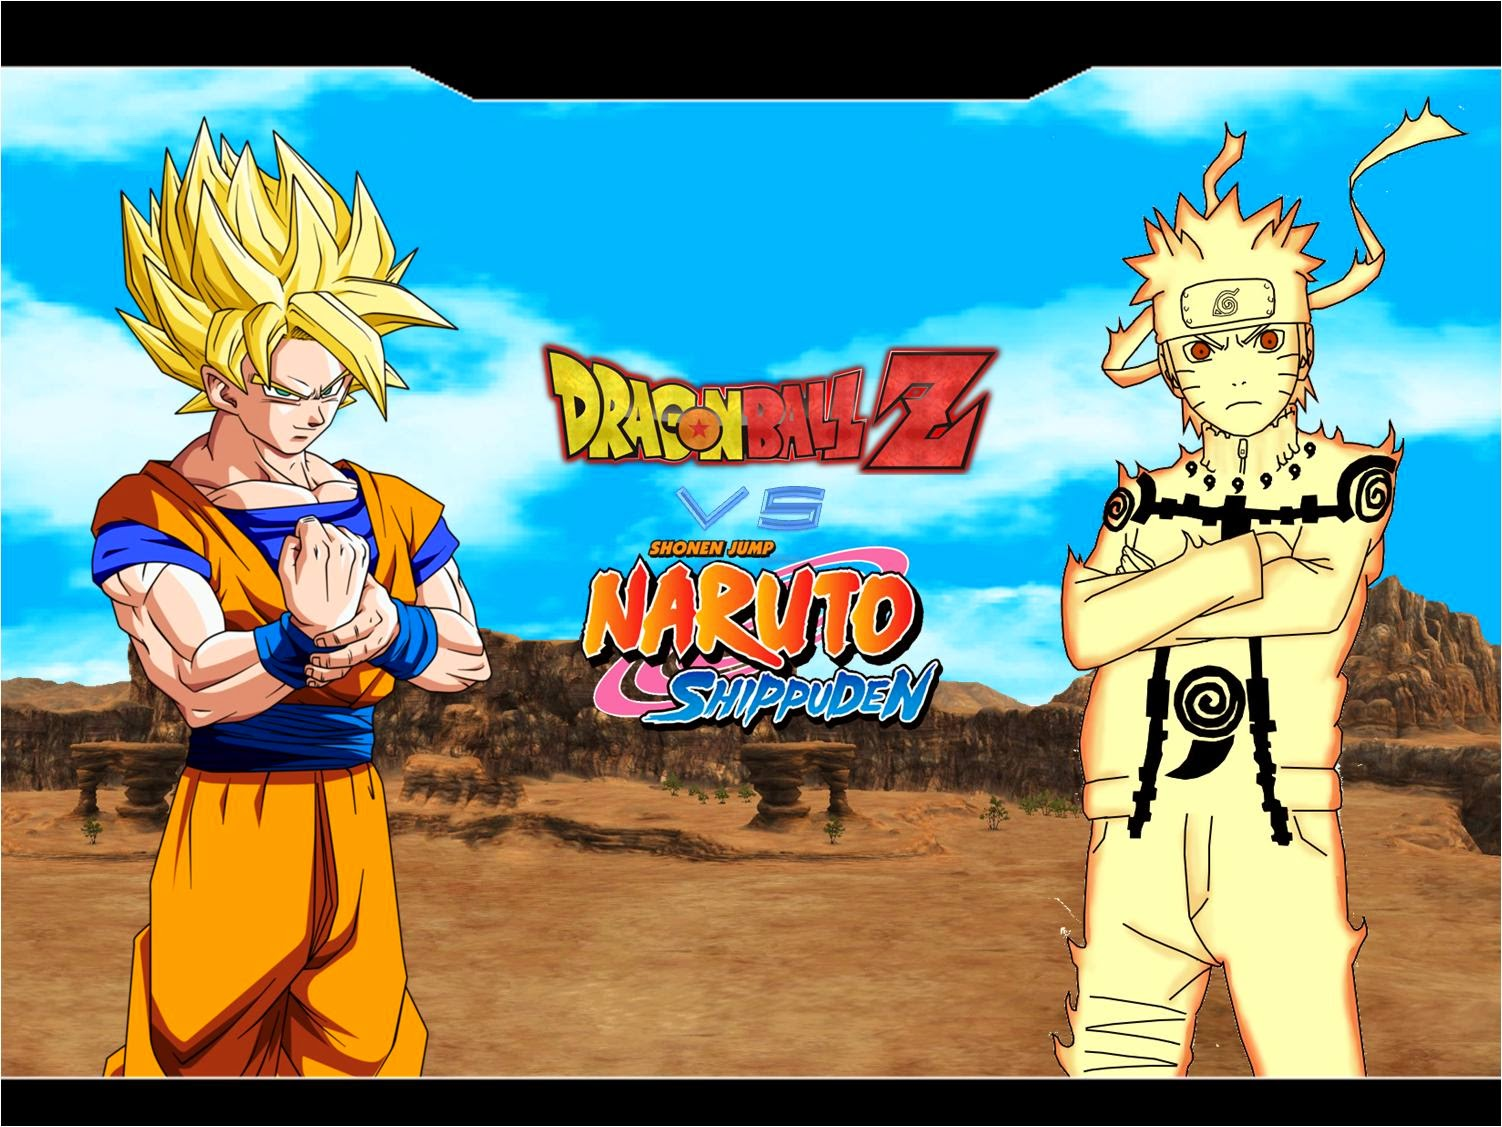 Dragon ball vs naruto 5